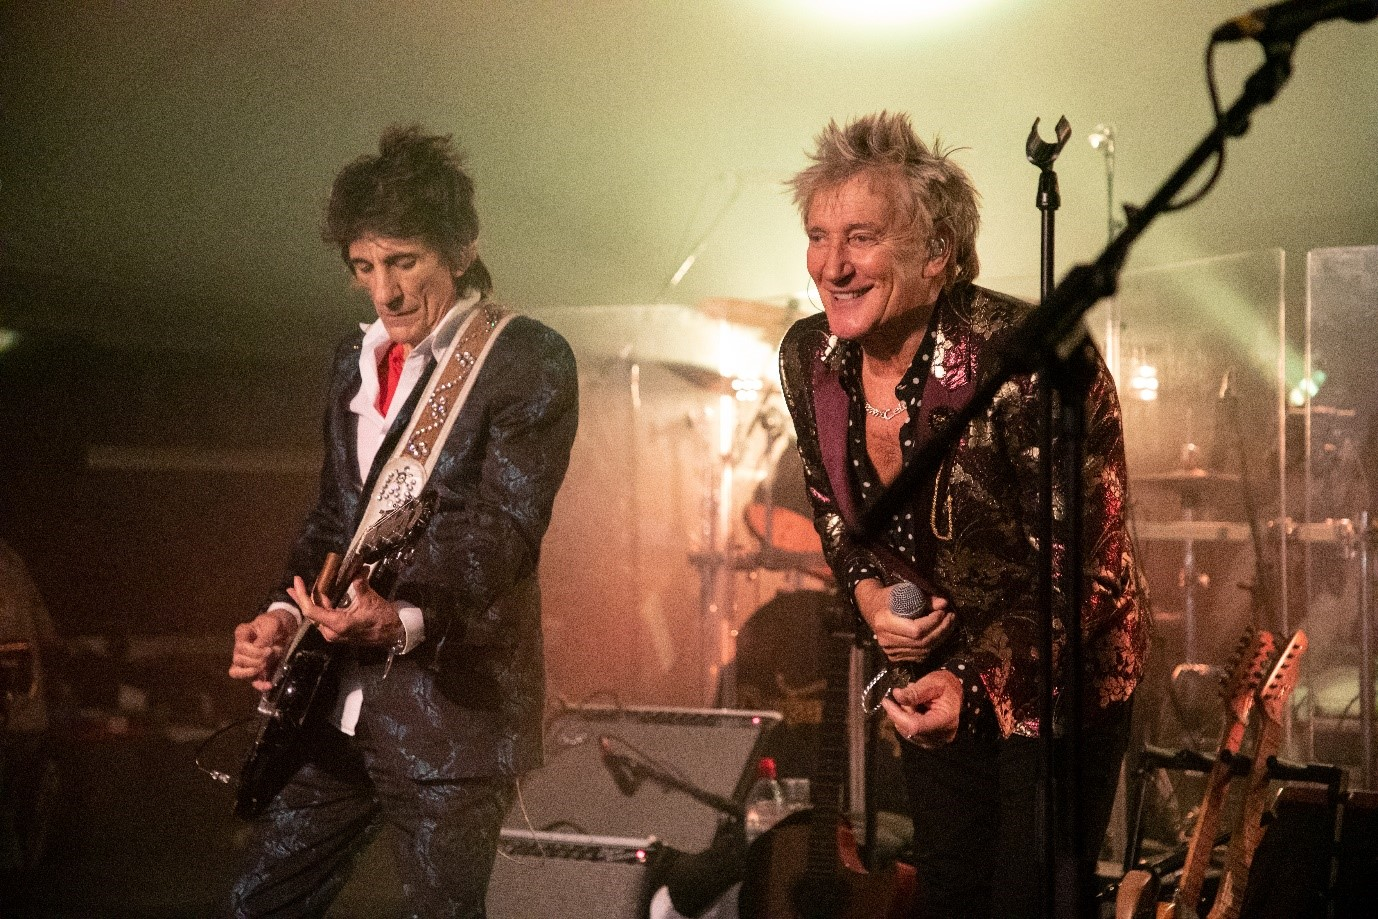 Rod and Ronnie 2019